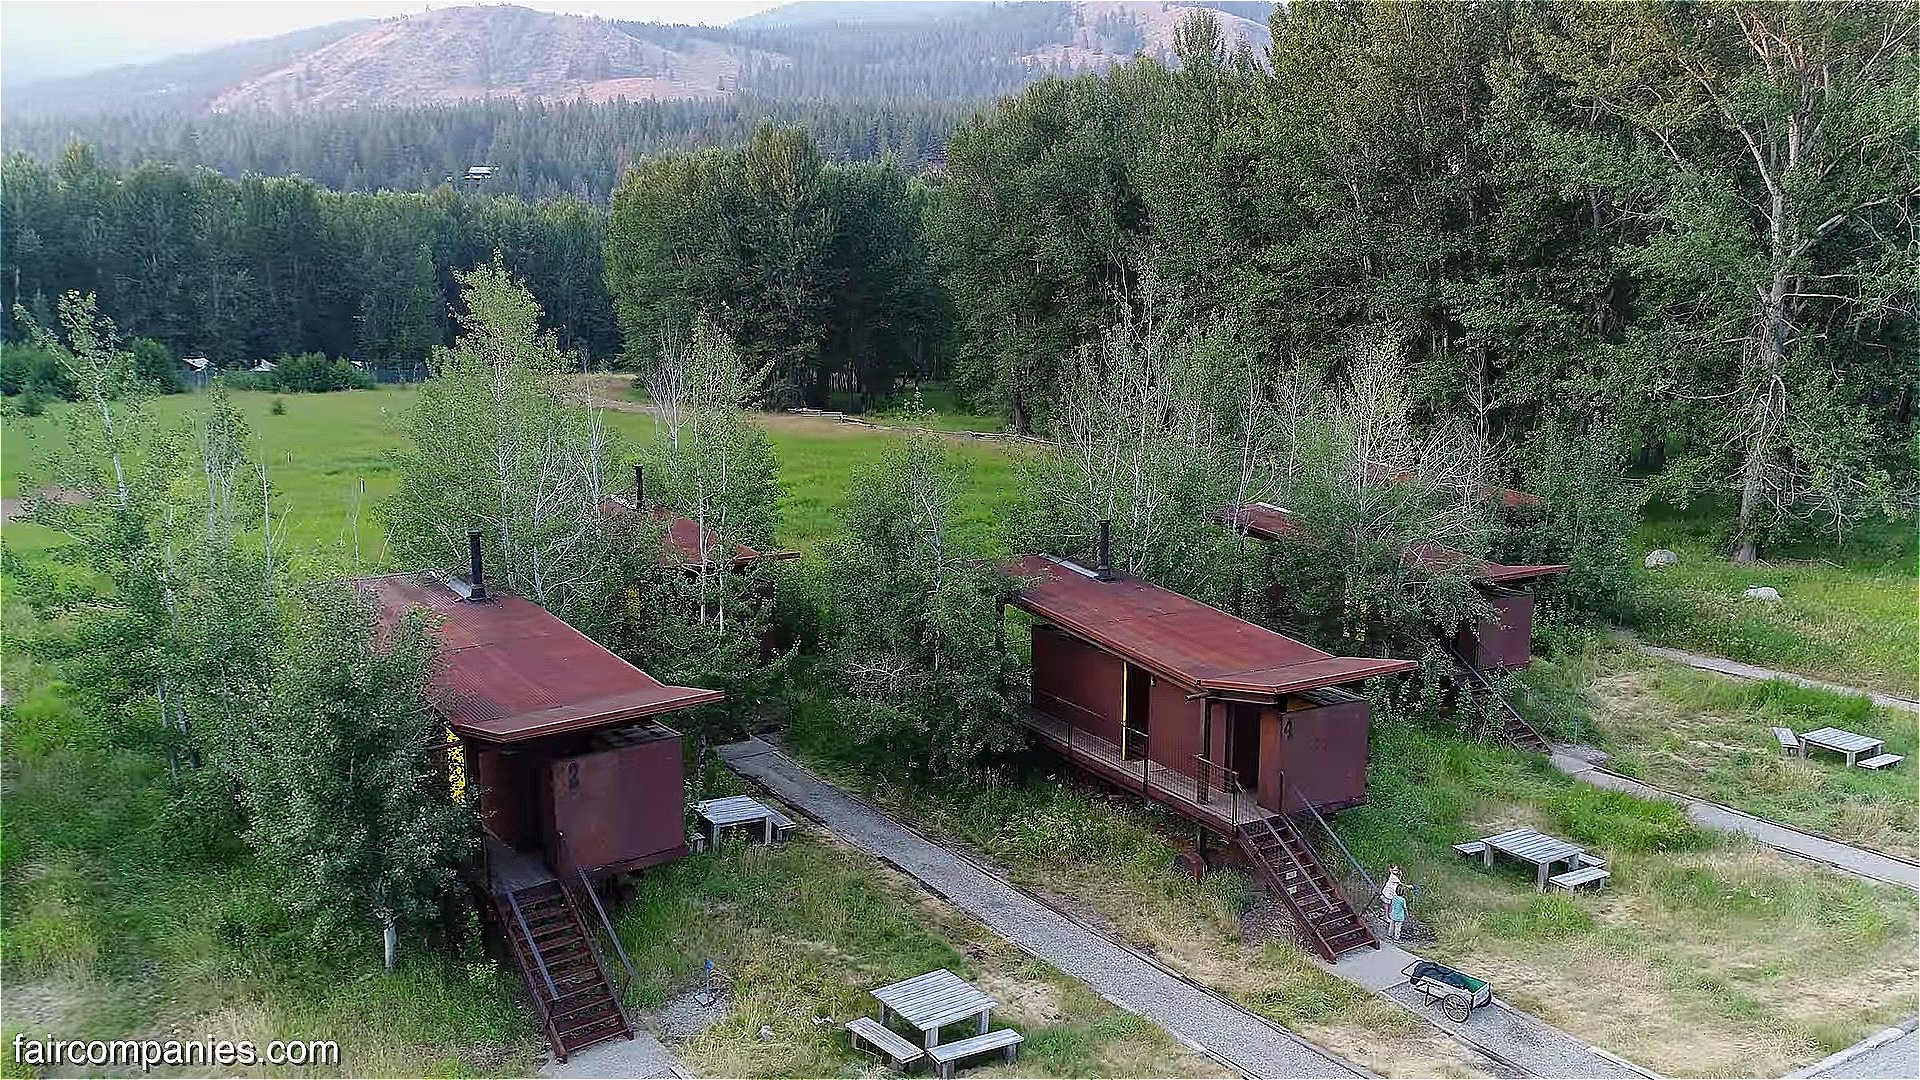 Home Builders Seattle 190 Sq. Ft. Tiny Rolling Hut Cabins In Methow Valley